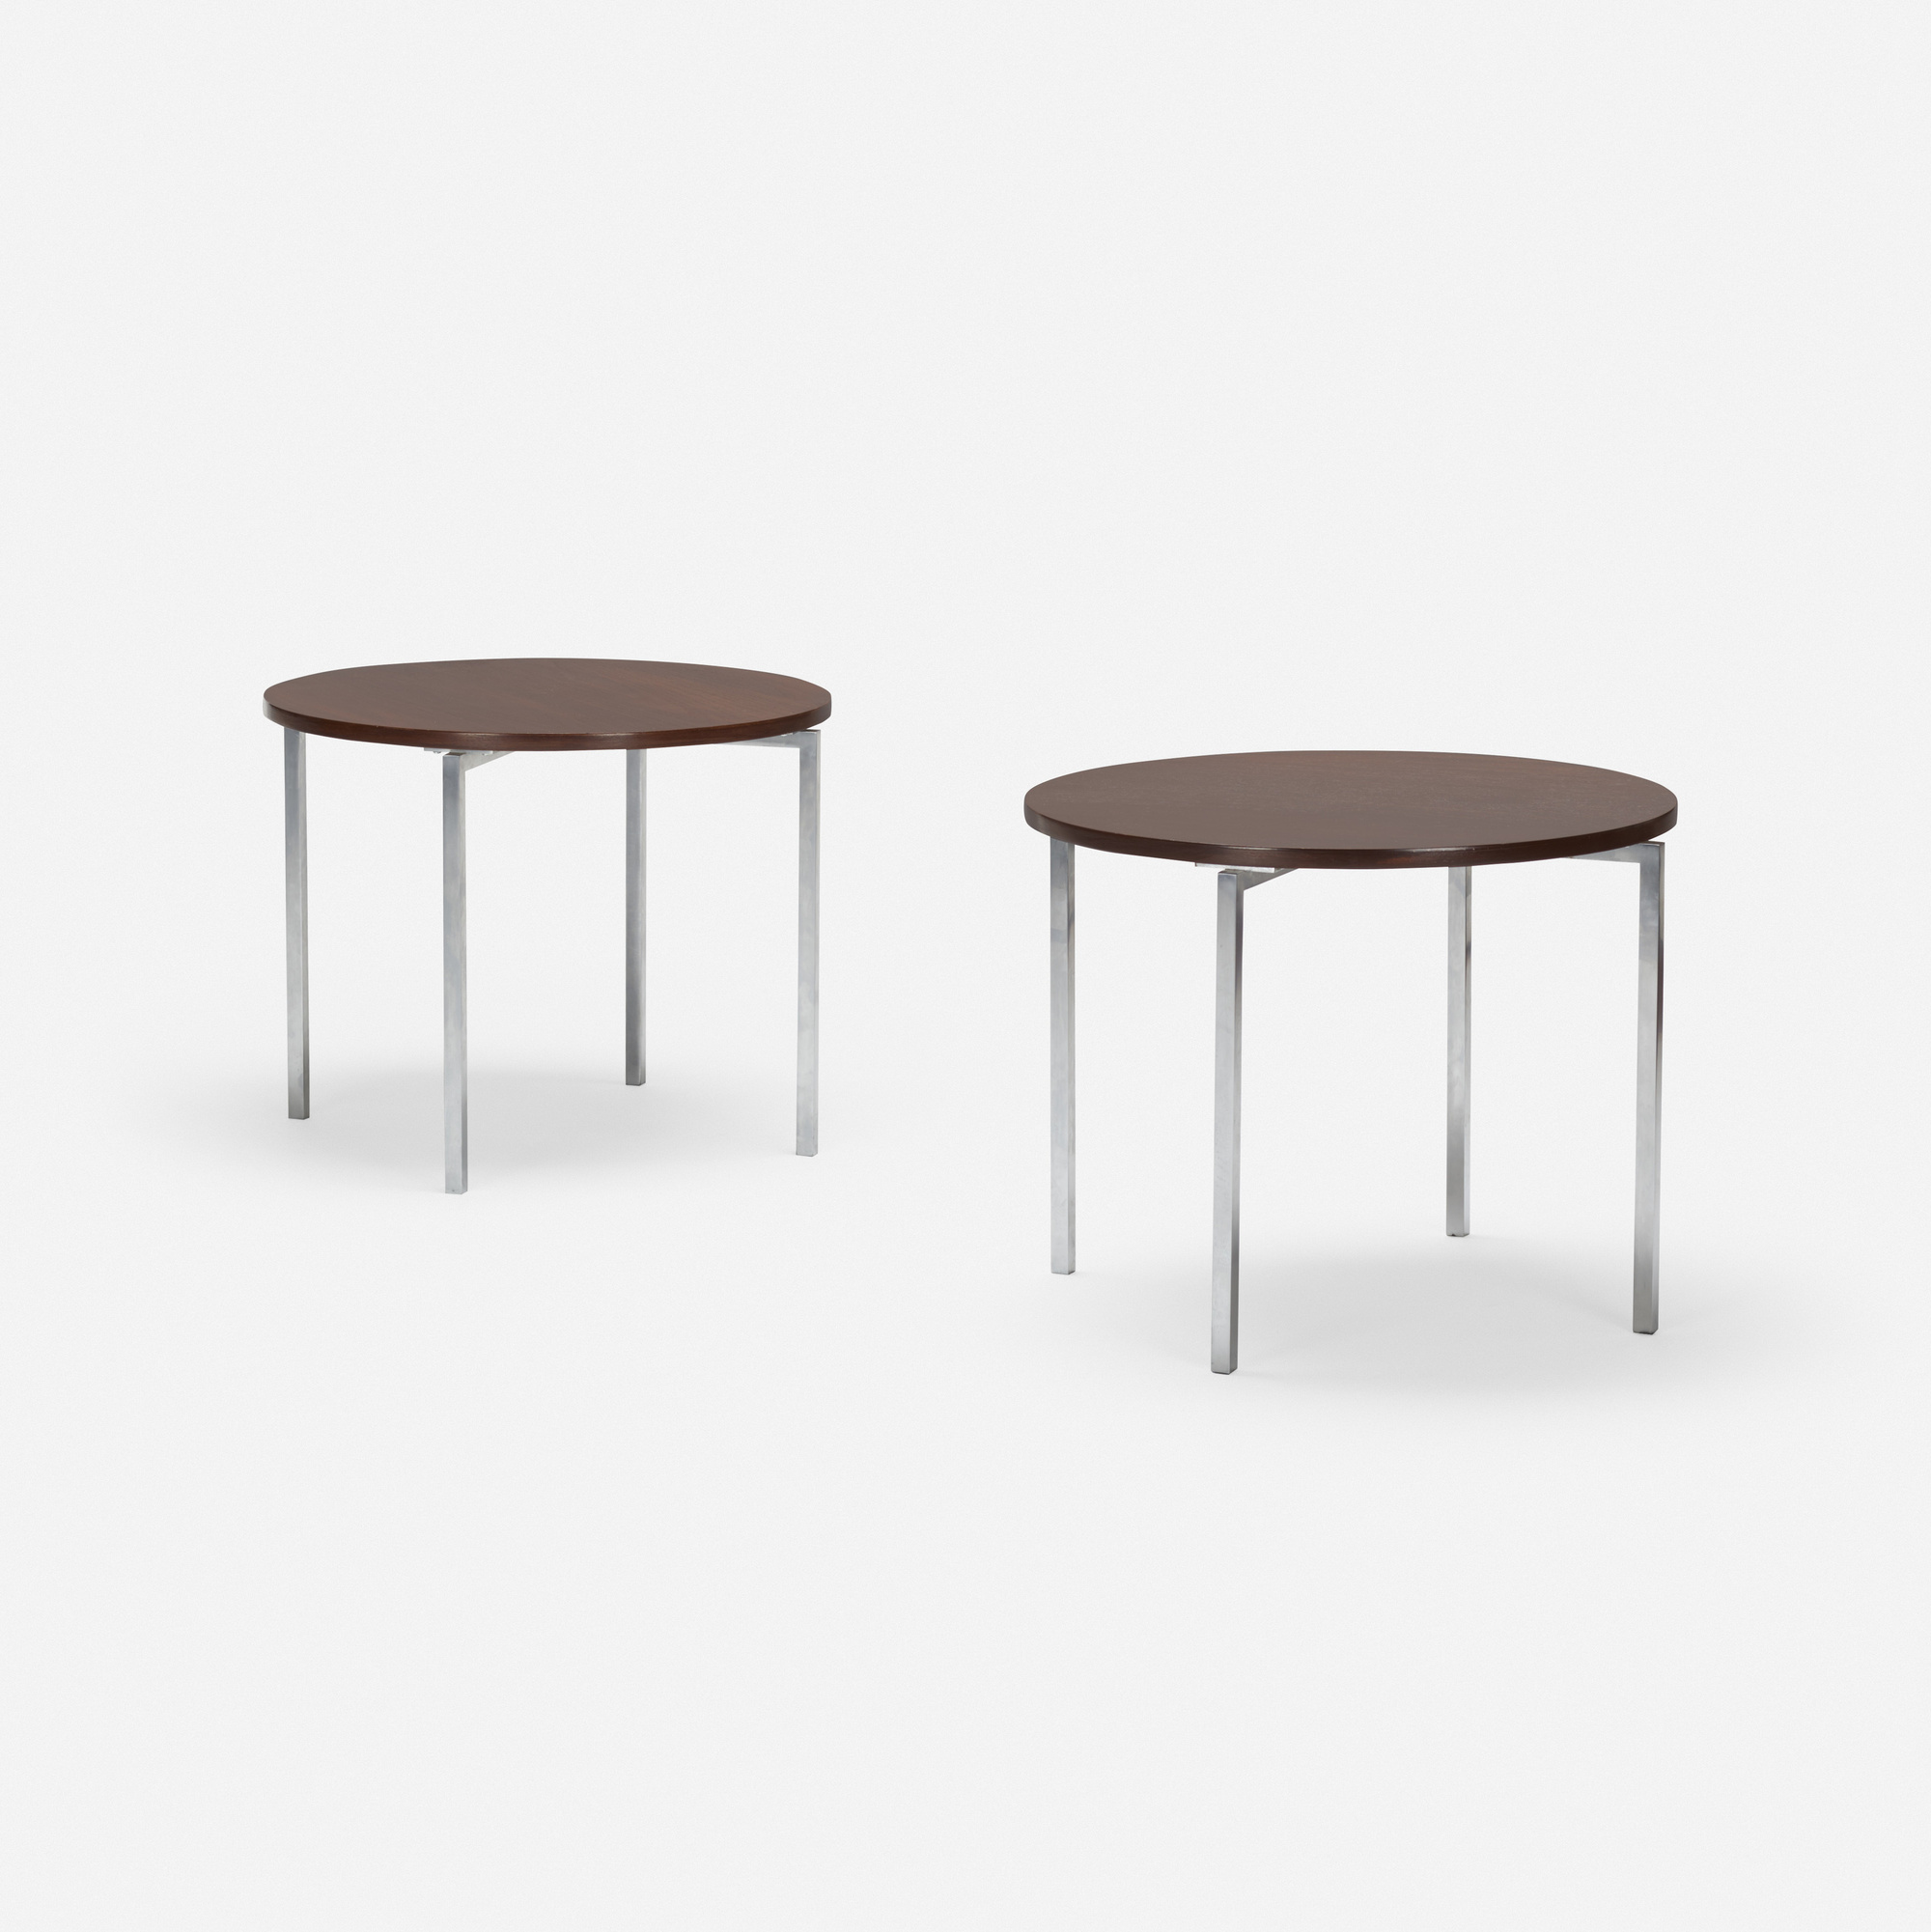 Tables Knoll 659 Florence Knoll Occasional Tables Pair American Design 20